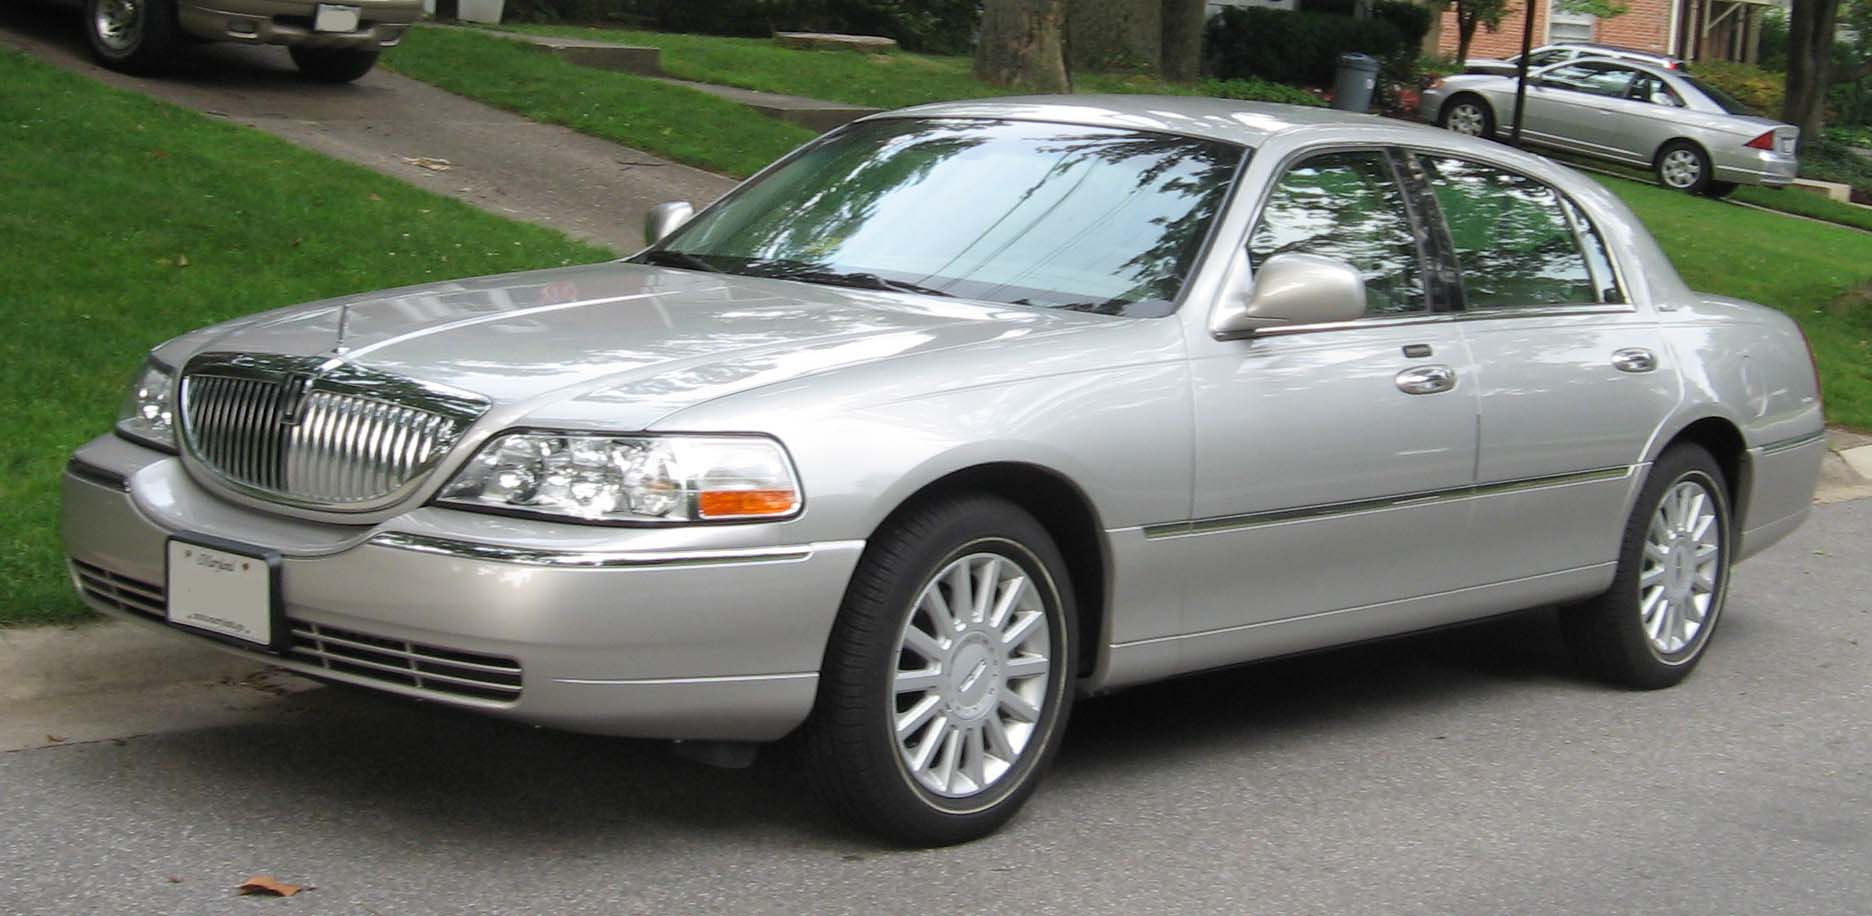 2003 Lincoln Town Car Image 10